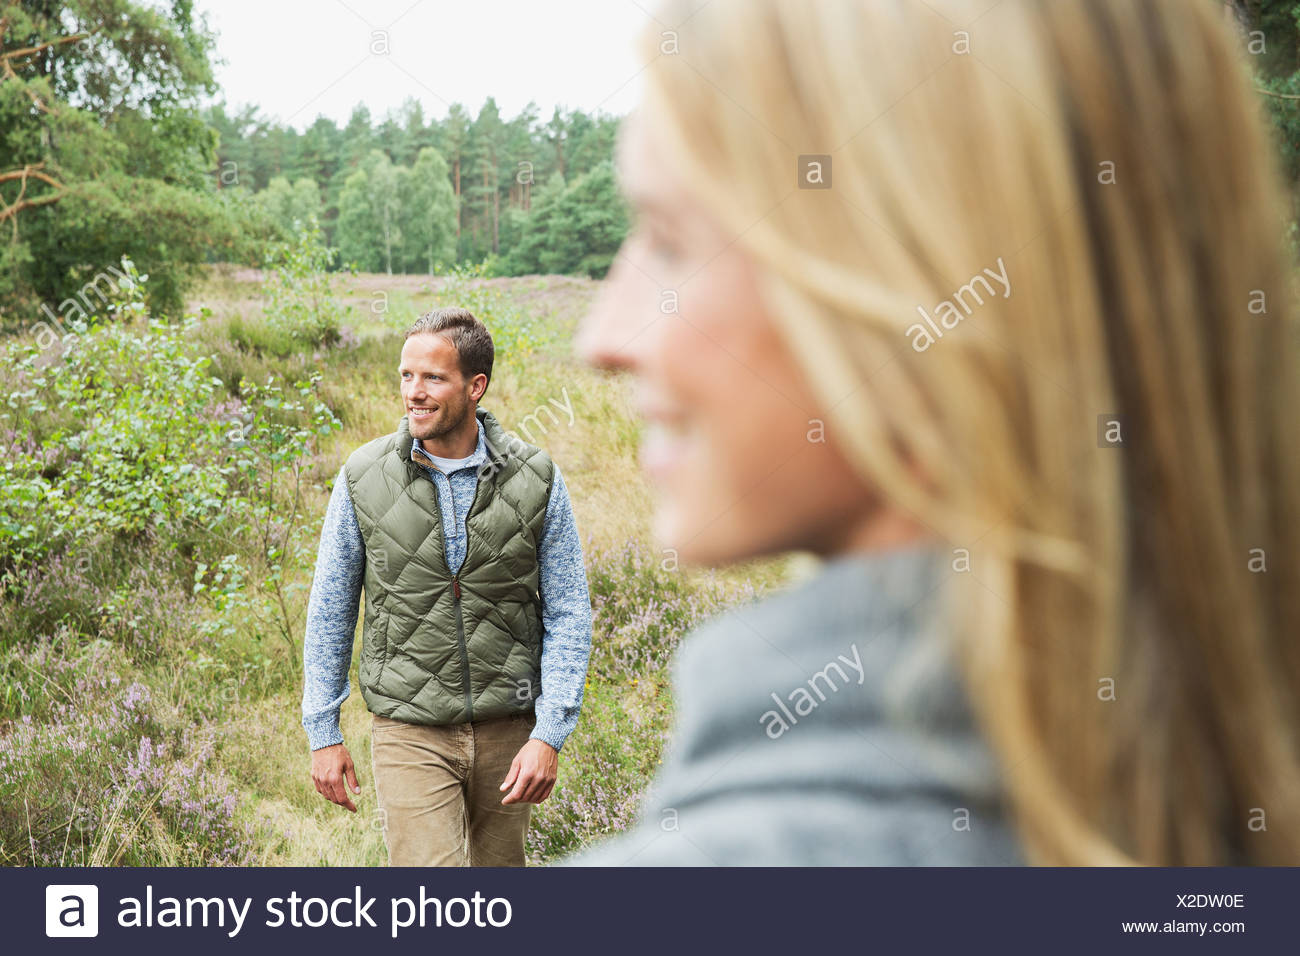 Mid adult man looking away, woman blurred in foreground - Stock Image